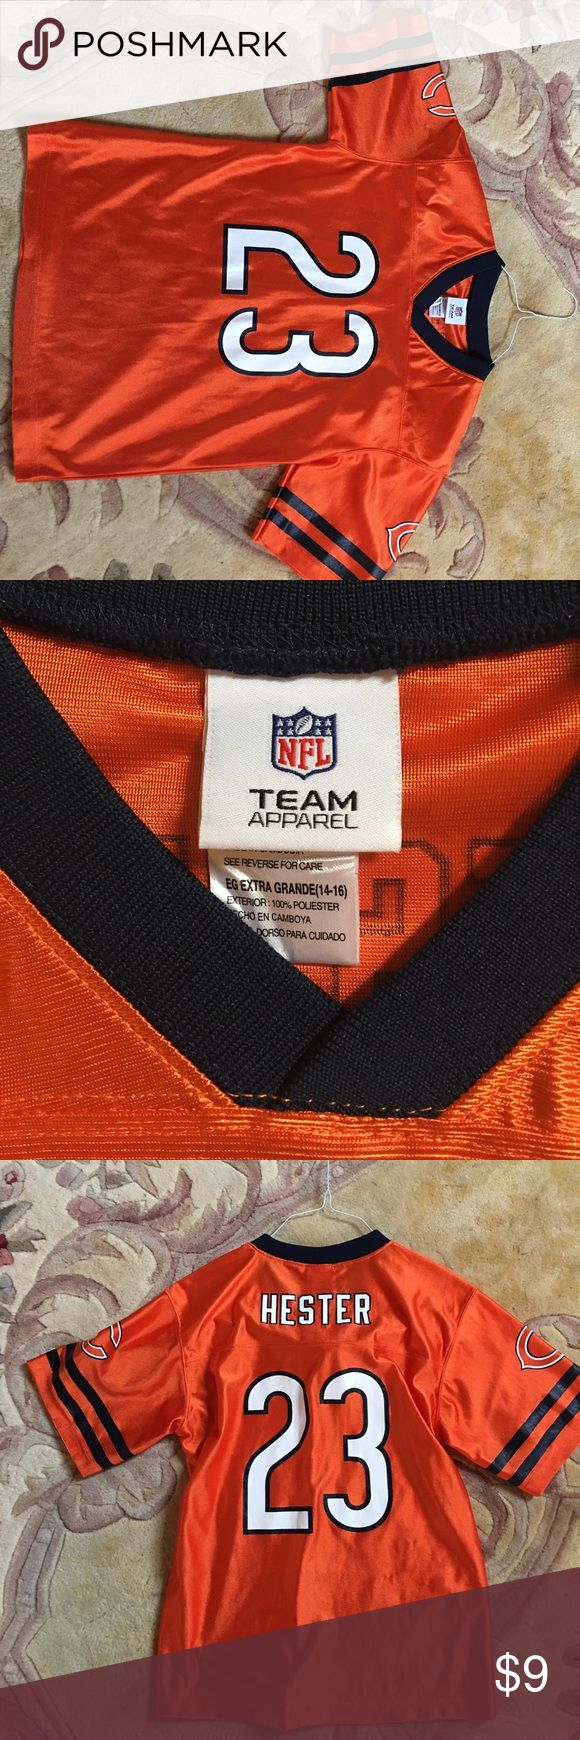 Chicago Bears jersey Boys like new Chicago Bears Hester jersey nfl Shirts & Tops Tees - Short Sleeve